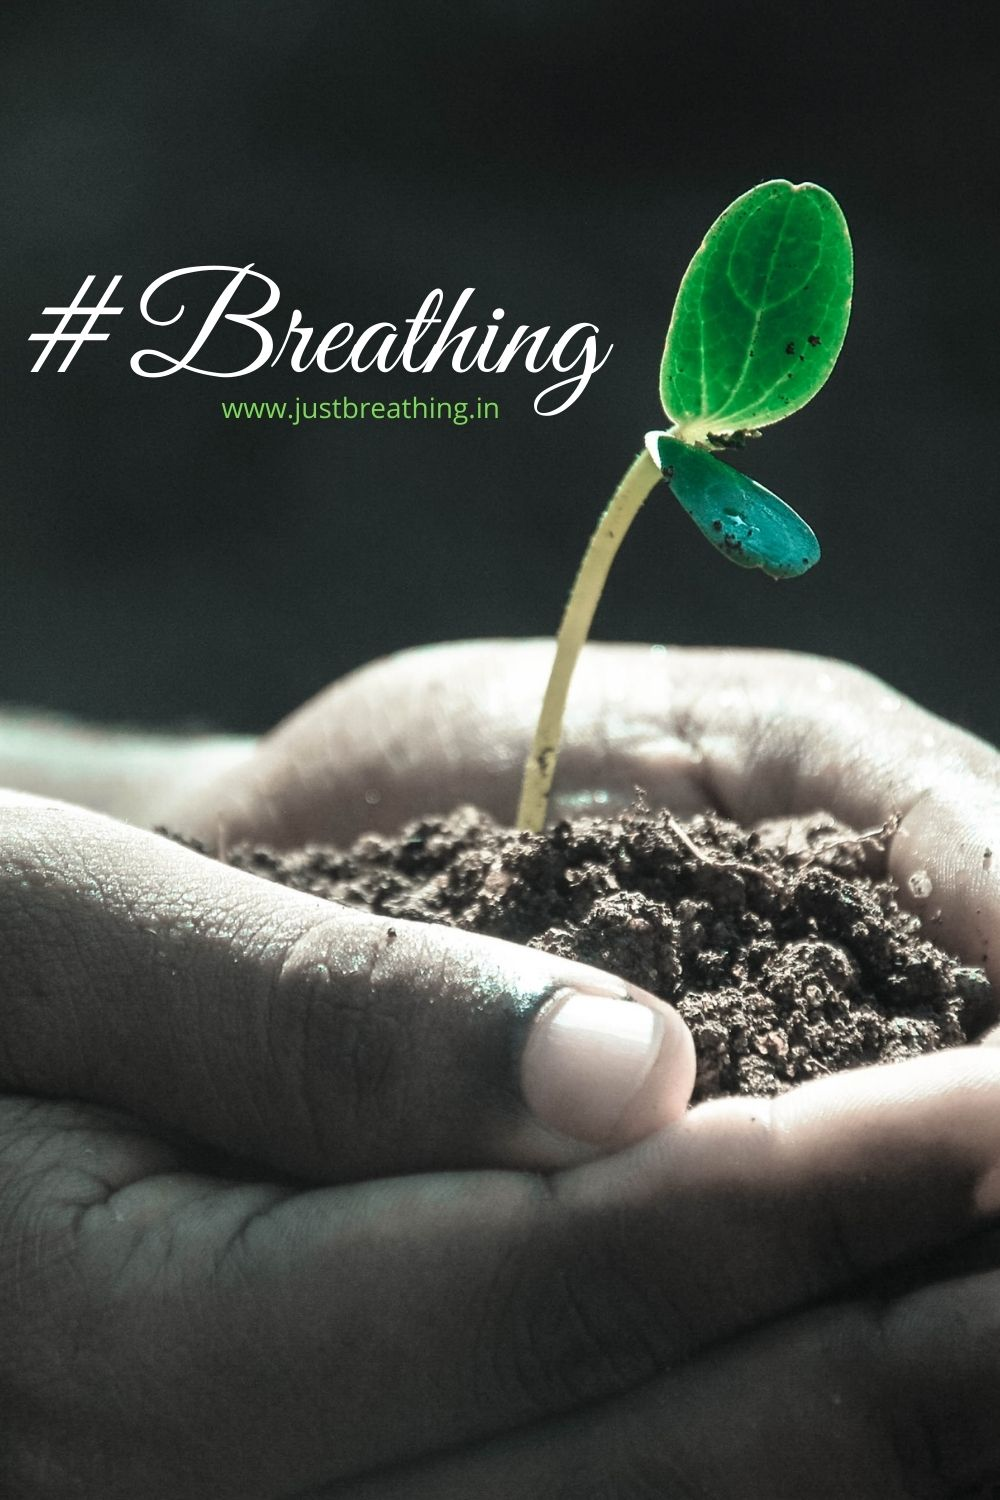 breathing-hashtags-for-instagram-hashtags of breathing for insta breathe